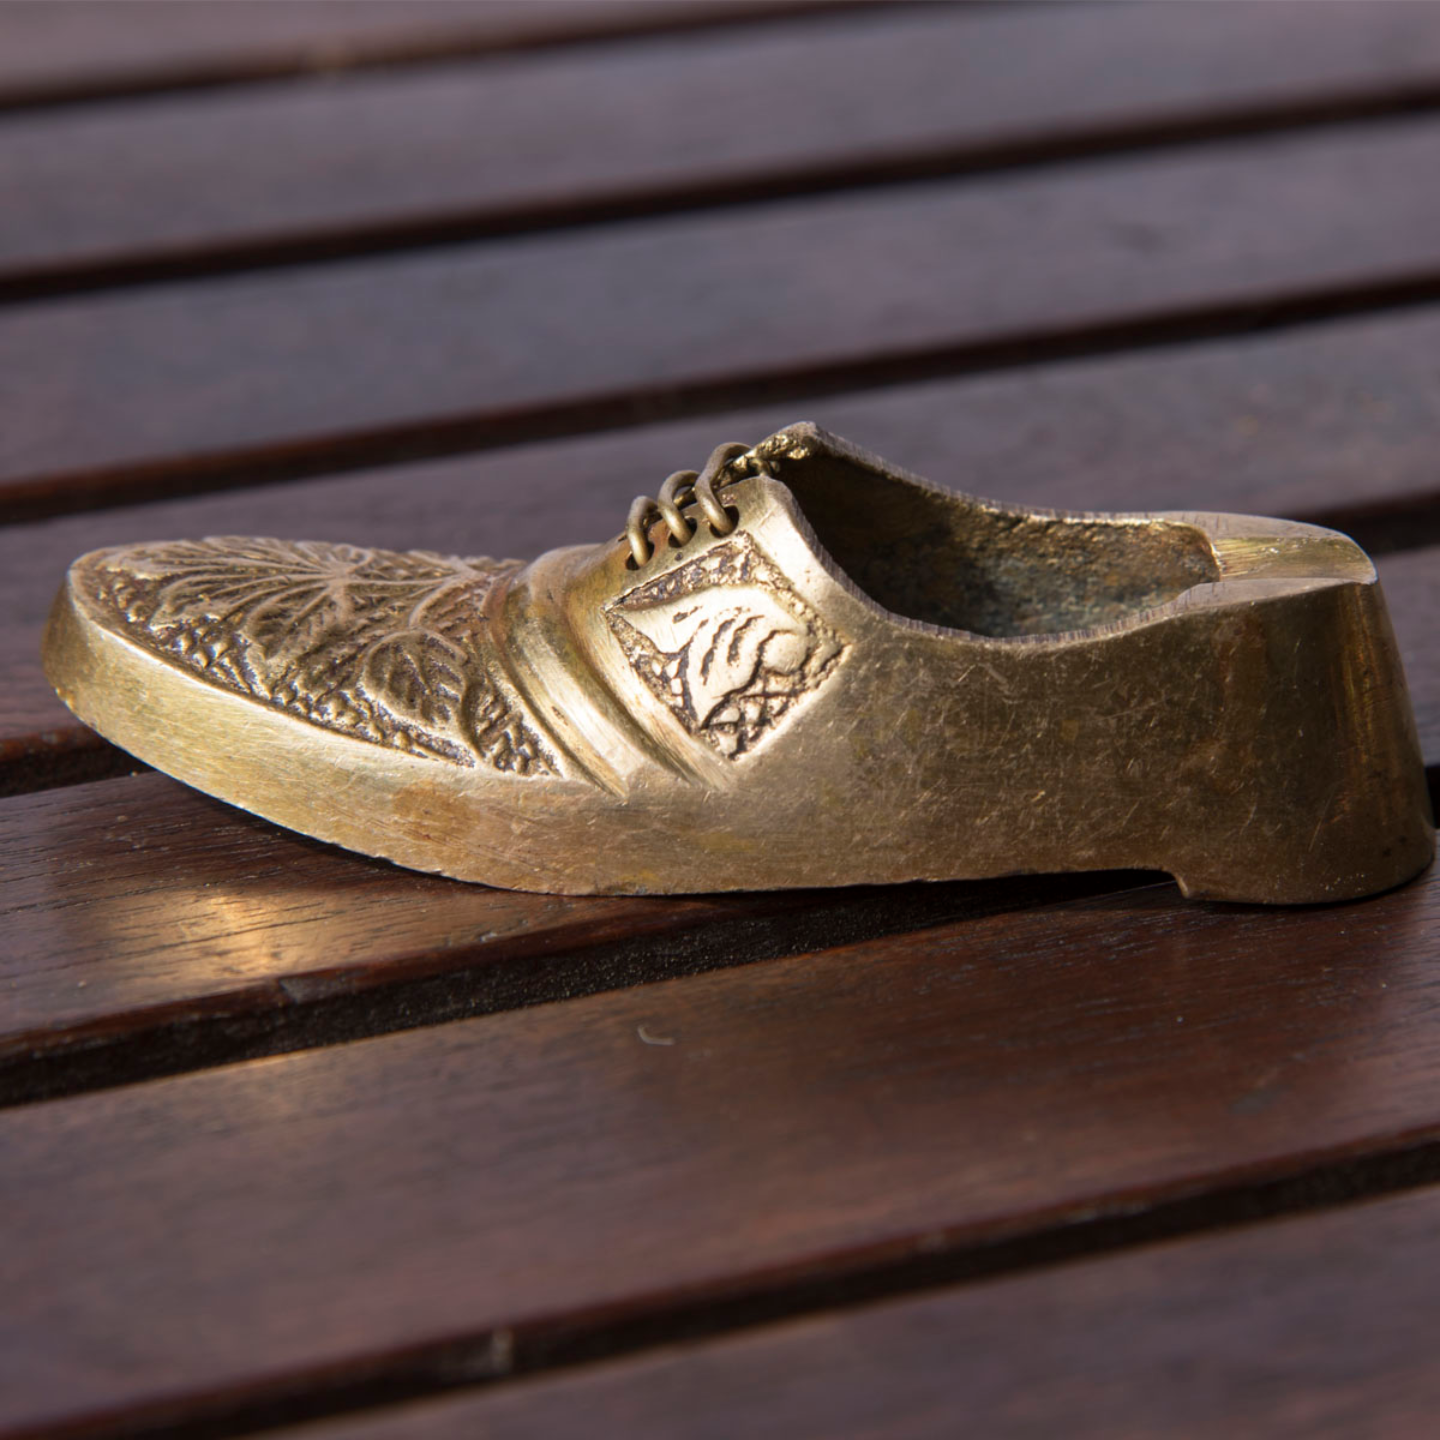 Shoe Ashtray / Paper Weight